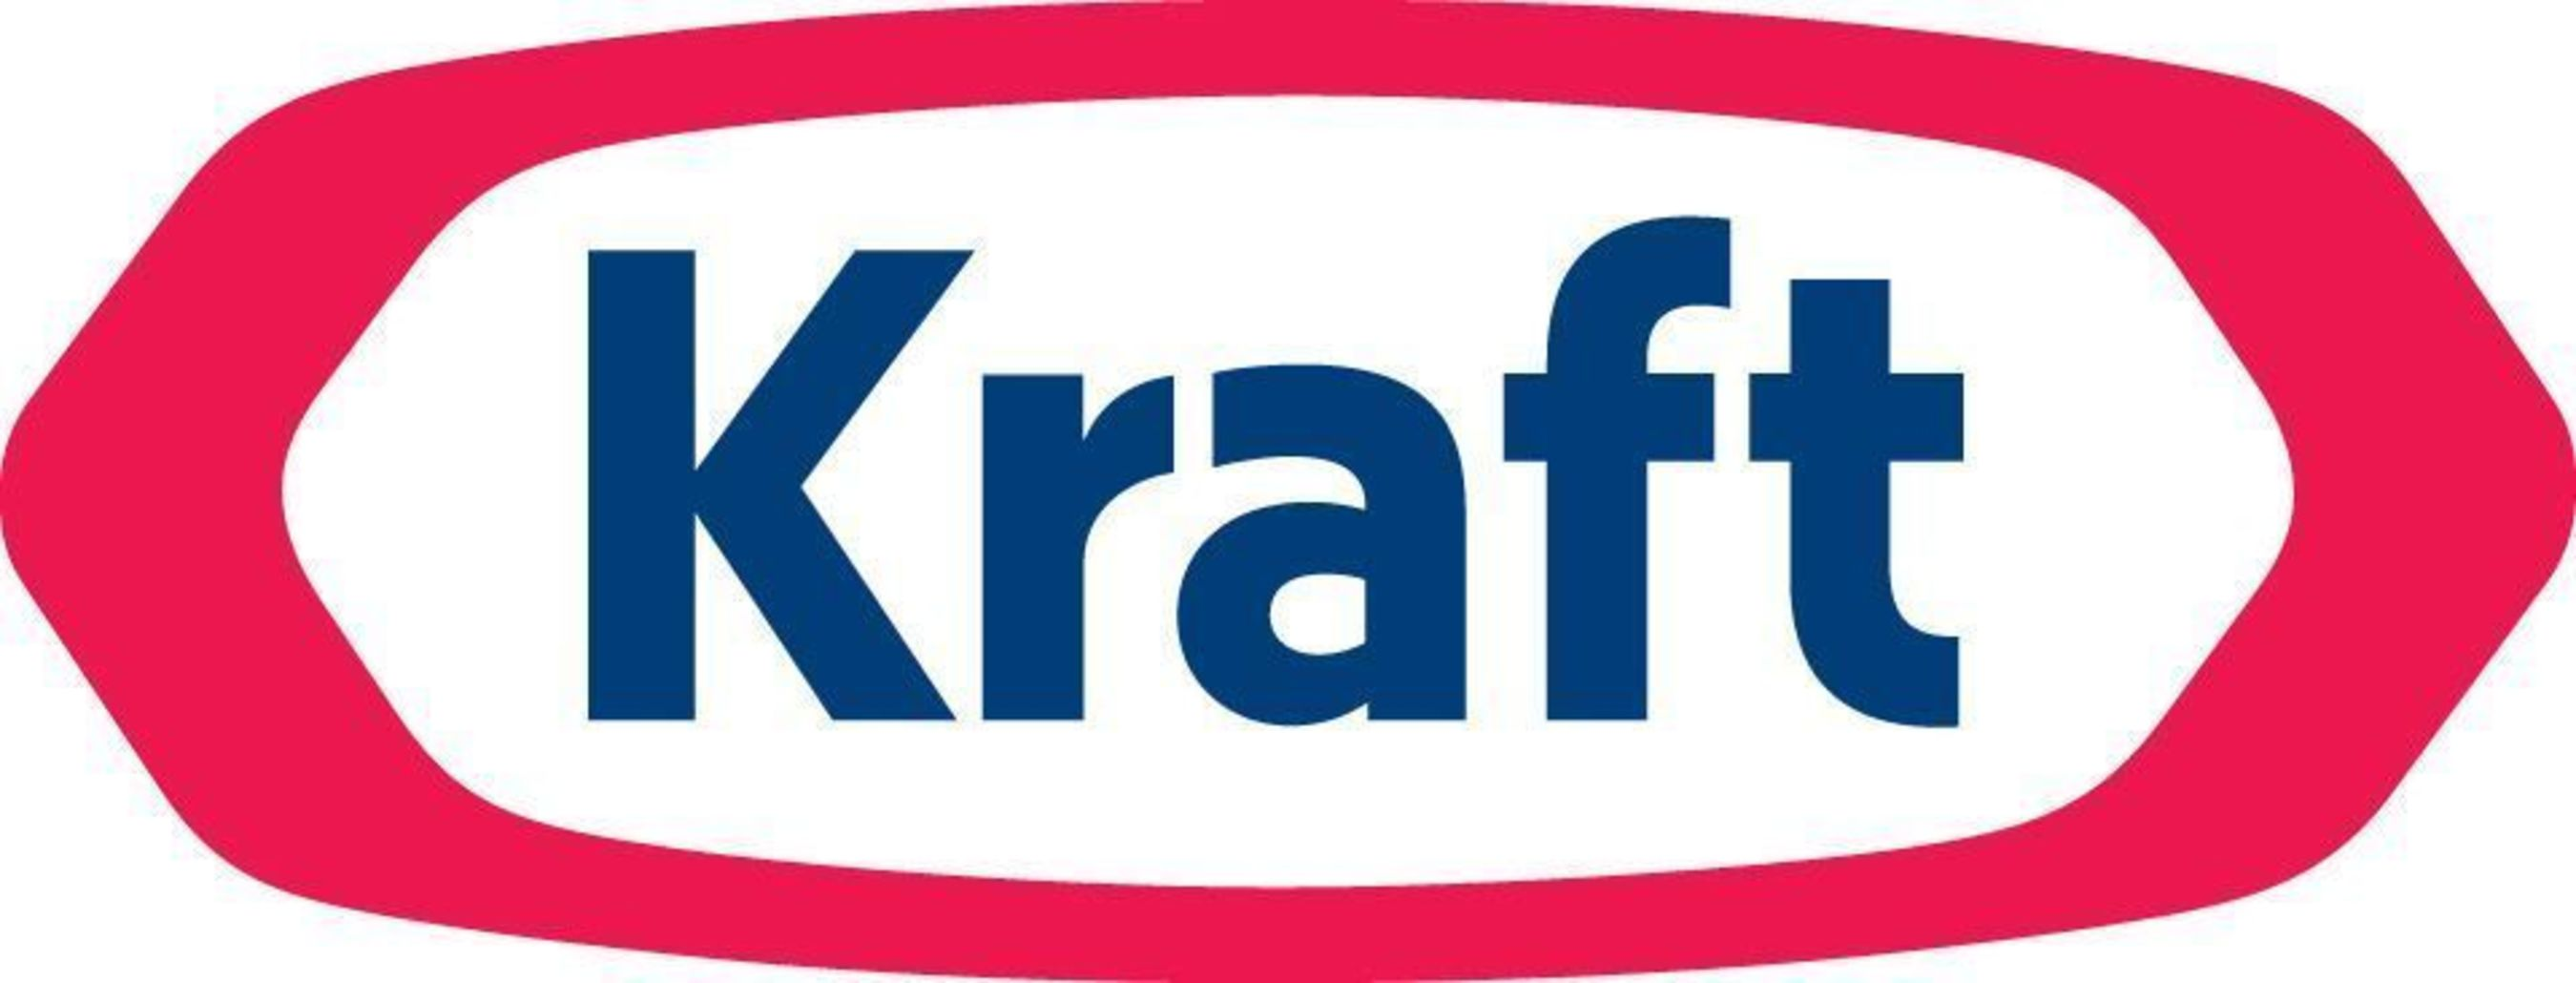 AMERICA'S FAVORITE CHEESE BRANDS COMPETE ON PAR WITH ARTISANAL BRANDS FROM AROUND THE WORLD (PRNewsFoto/Kraft Foods Group, Inc.)